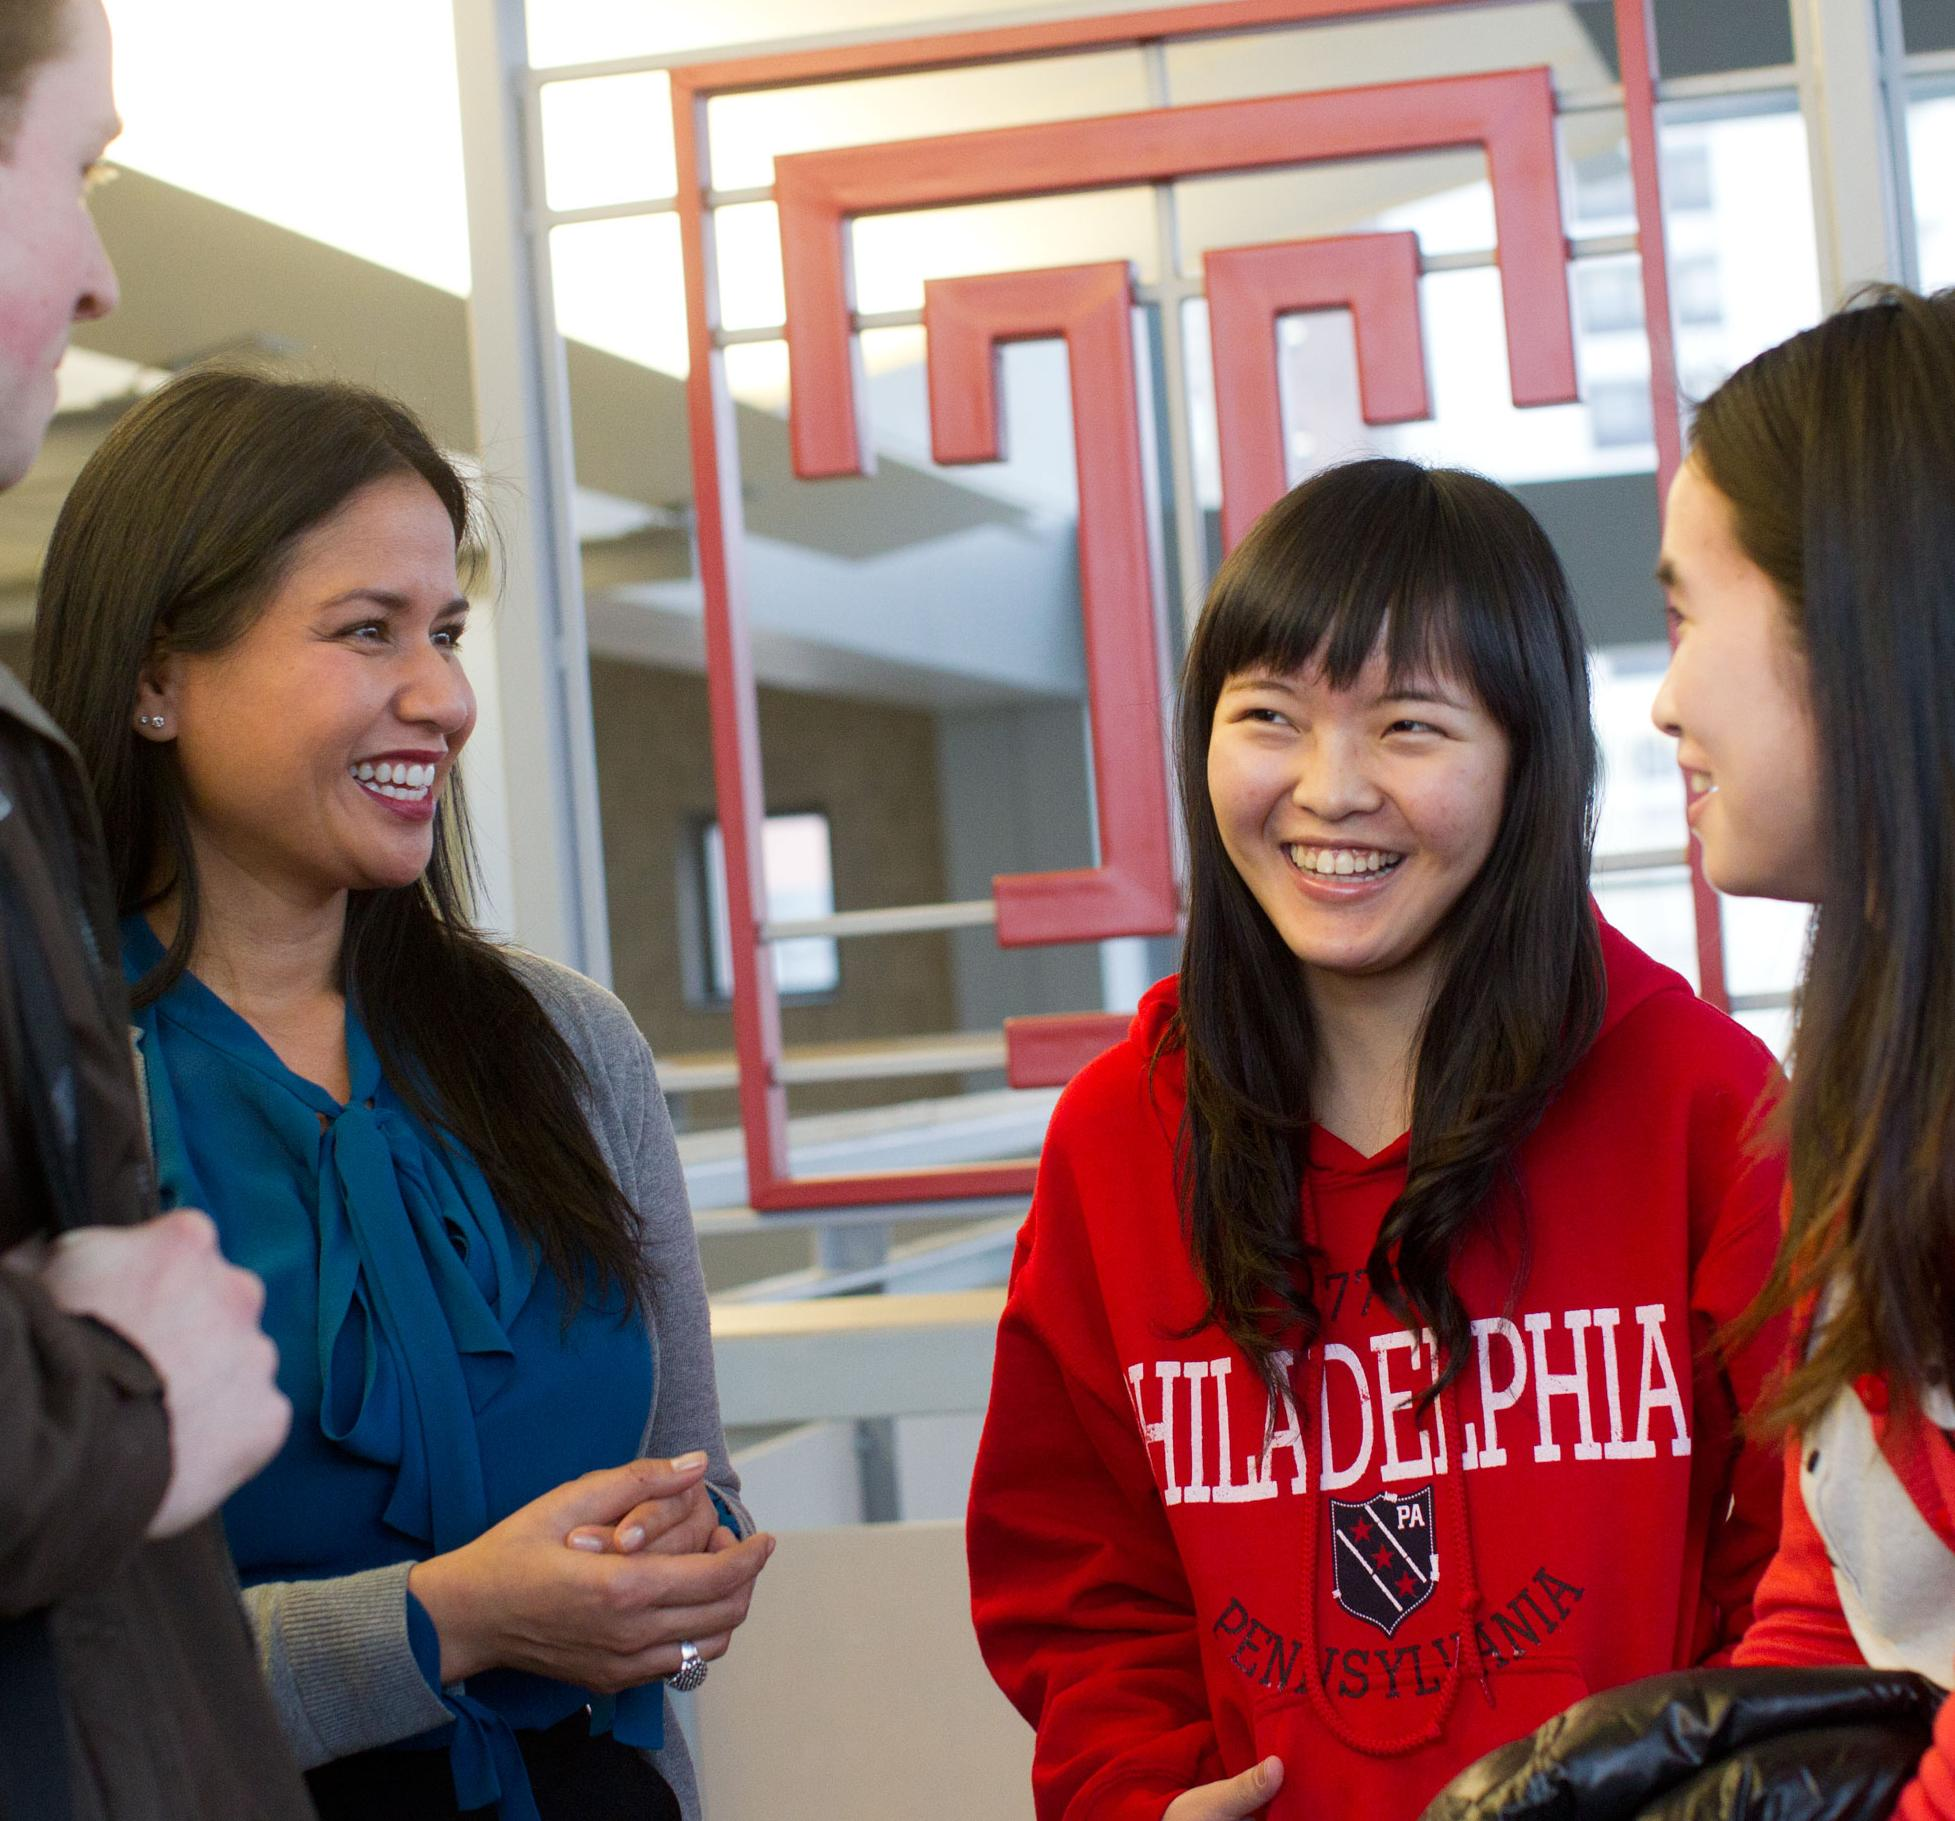 Four students gather to talk on campus